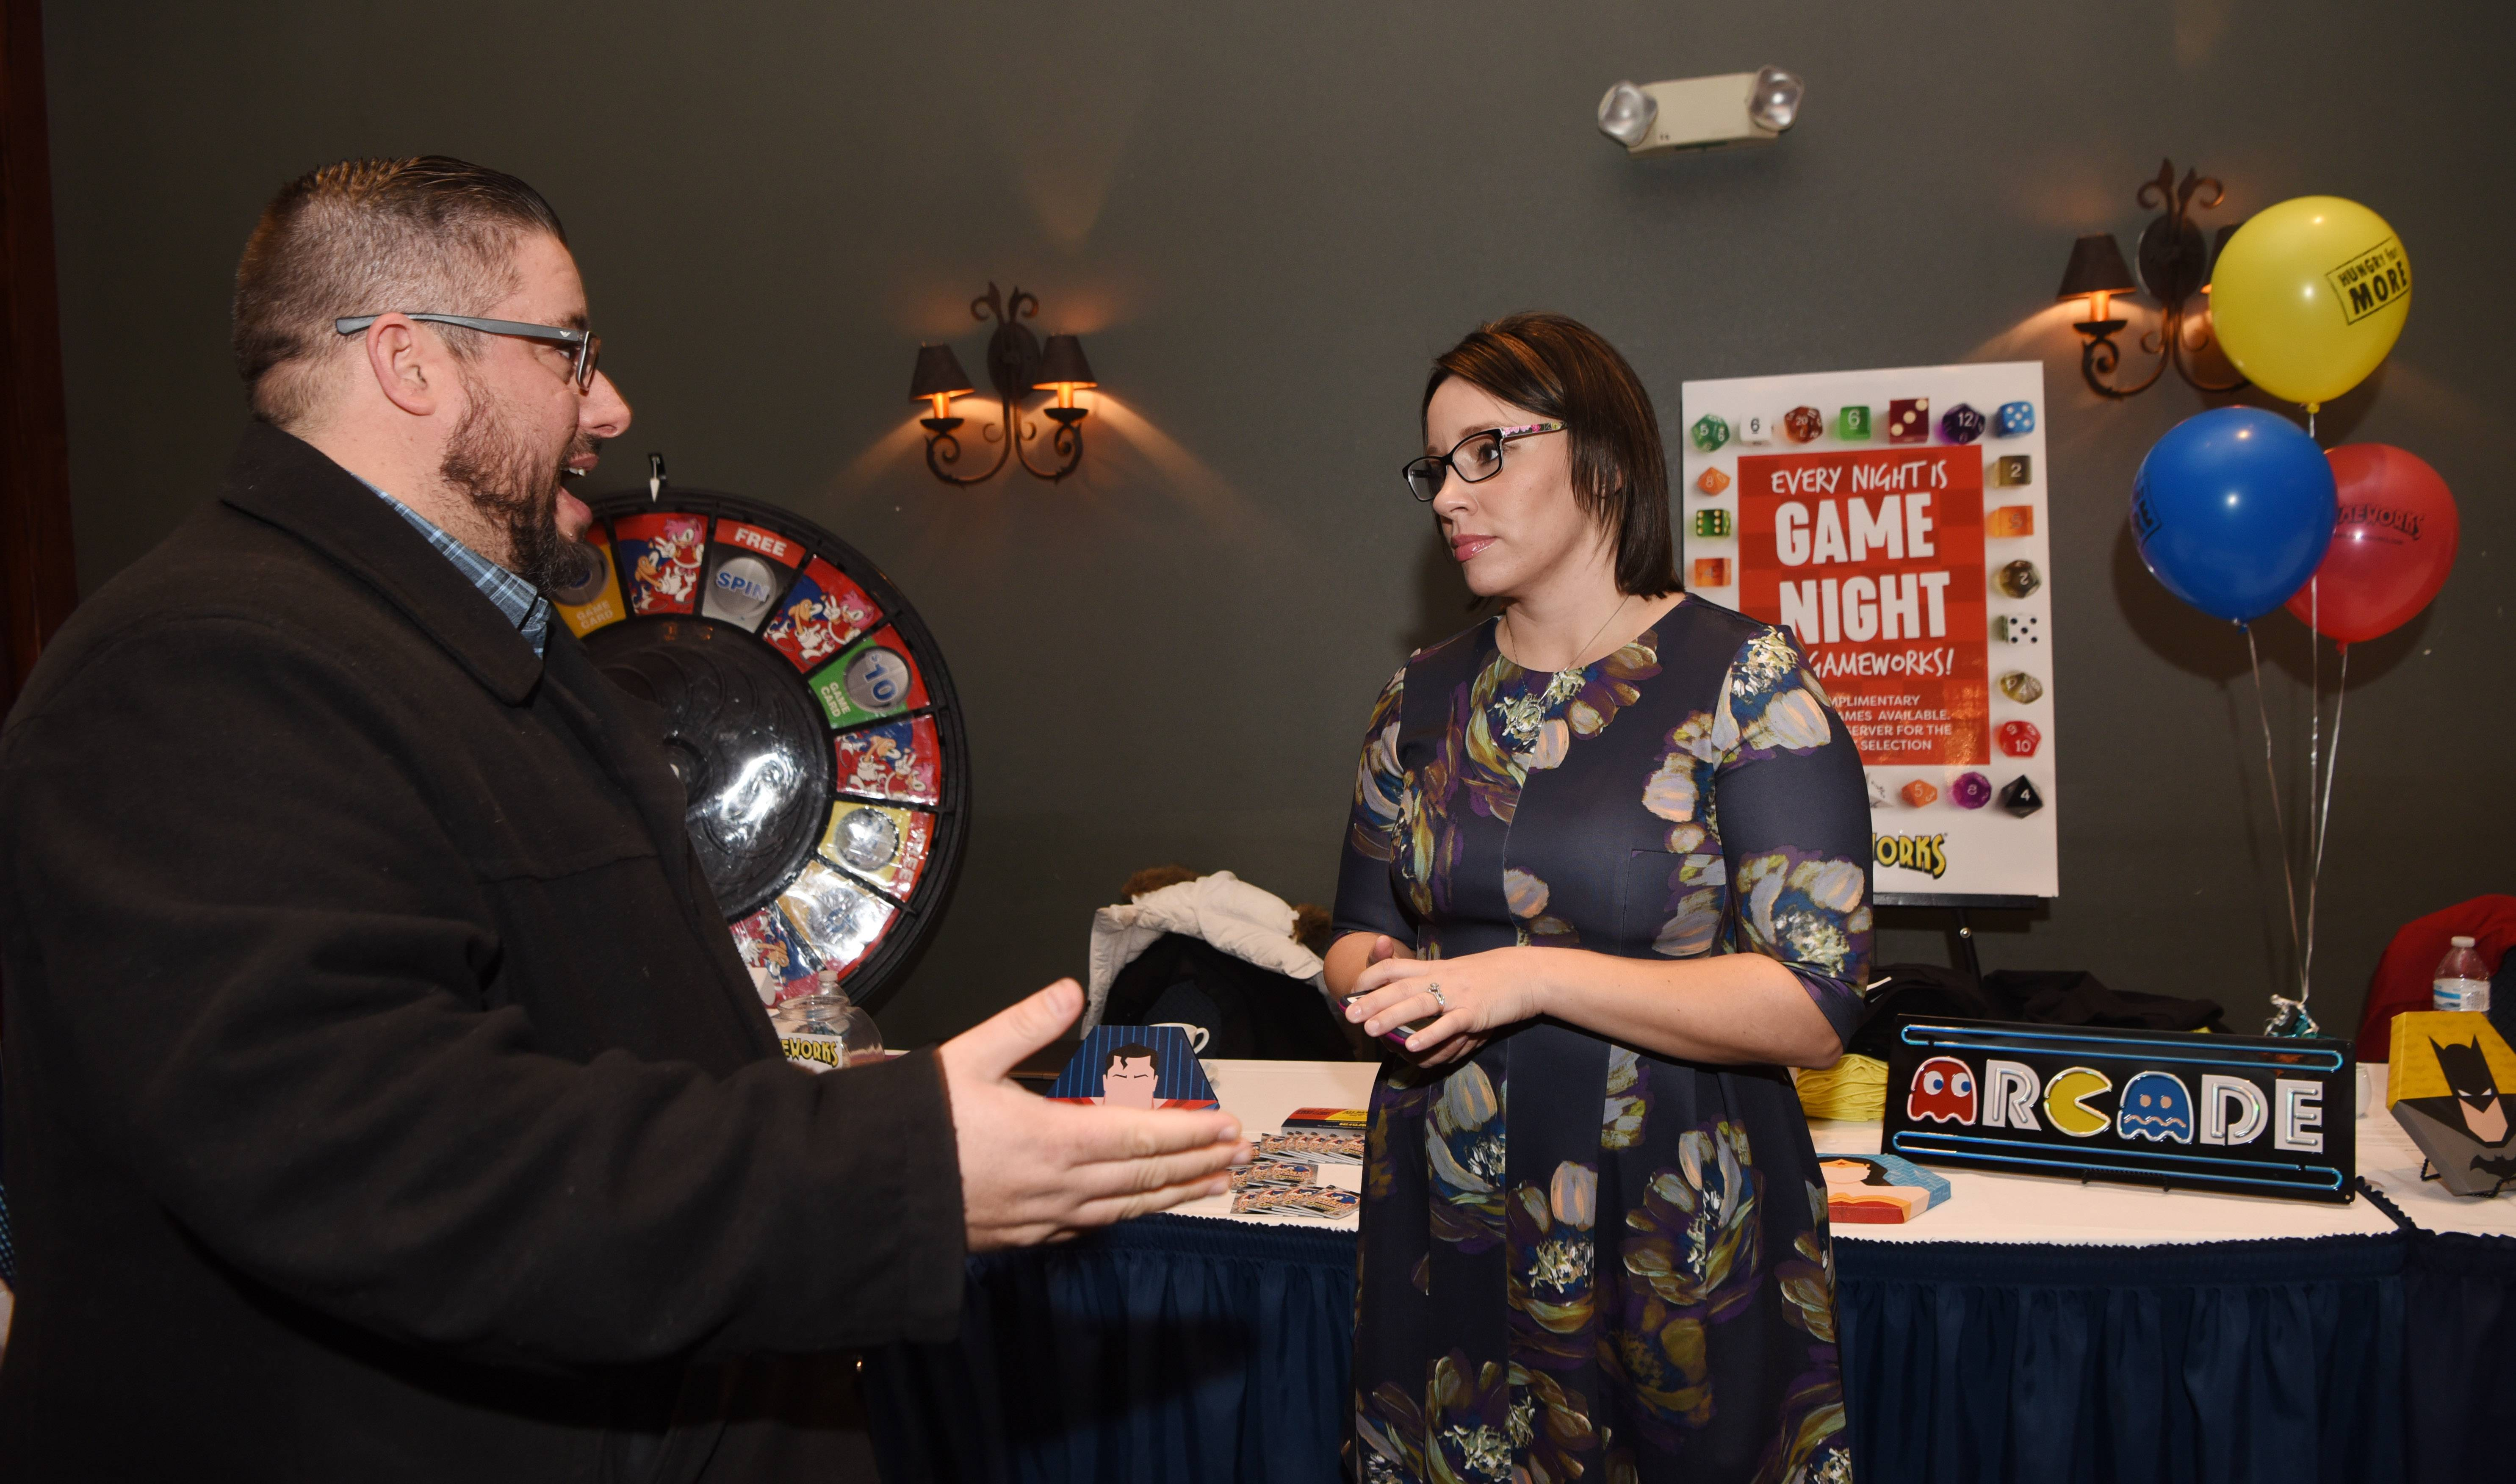 Joe Lewnard/jlewnard@dailyherald.comJoe Regilio of Bowlero talks with Mary Lindhola of Gameworks during the Northwest Suburban Hospitality Expo, hosted by the Daily Herald Business Ledger at the Stonegate Conference and Banquet Centre in Hoffman Estates Thursday.